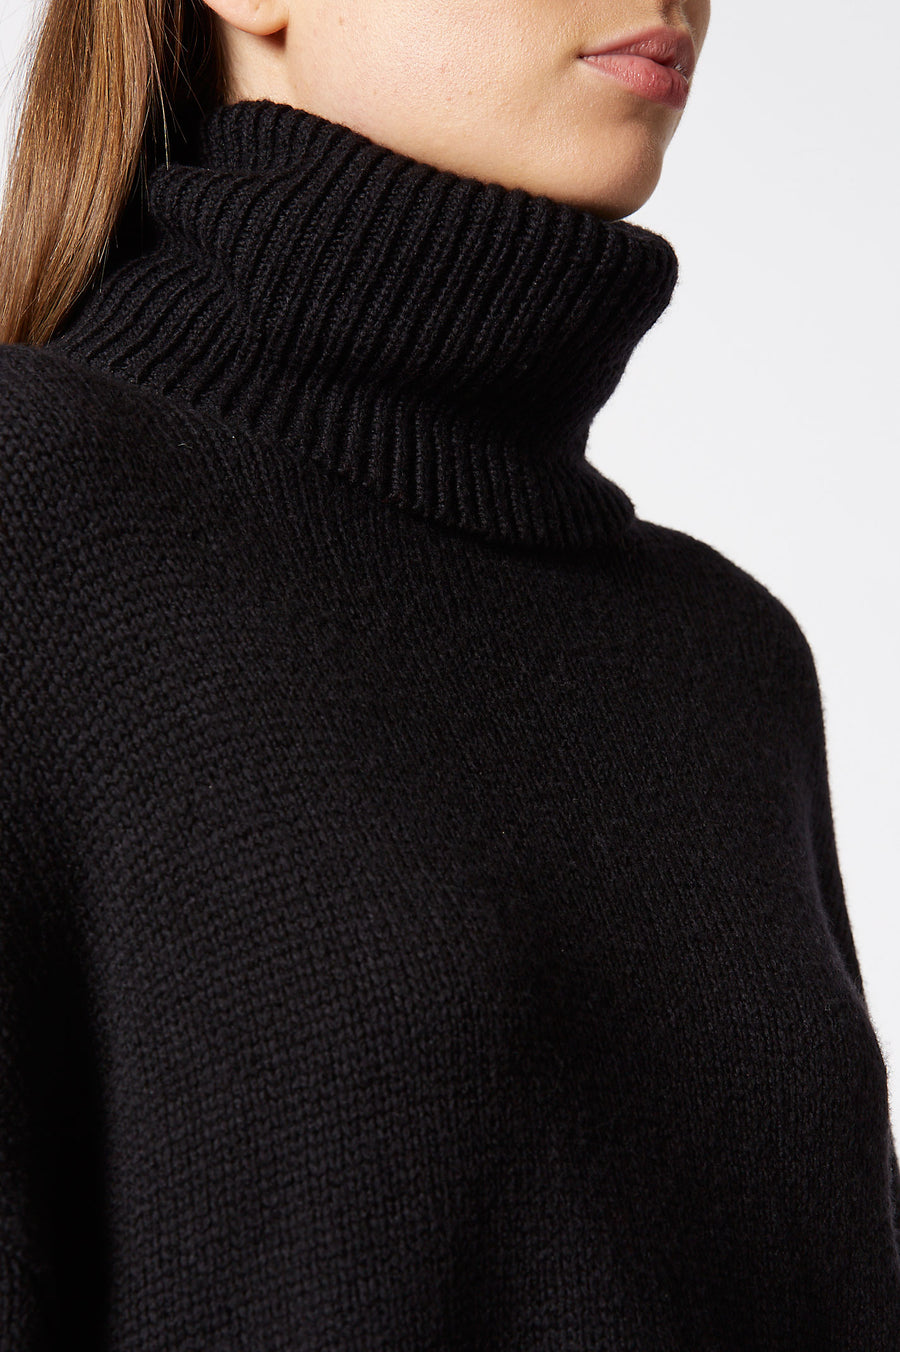 Husky Cravat Sweater, lofty yarn is knitted in jersey stitch, rib turtle-neck, cuff and hem details, Color Black